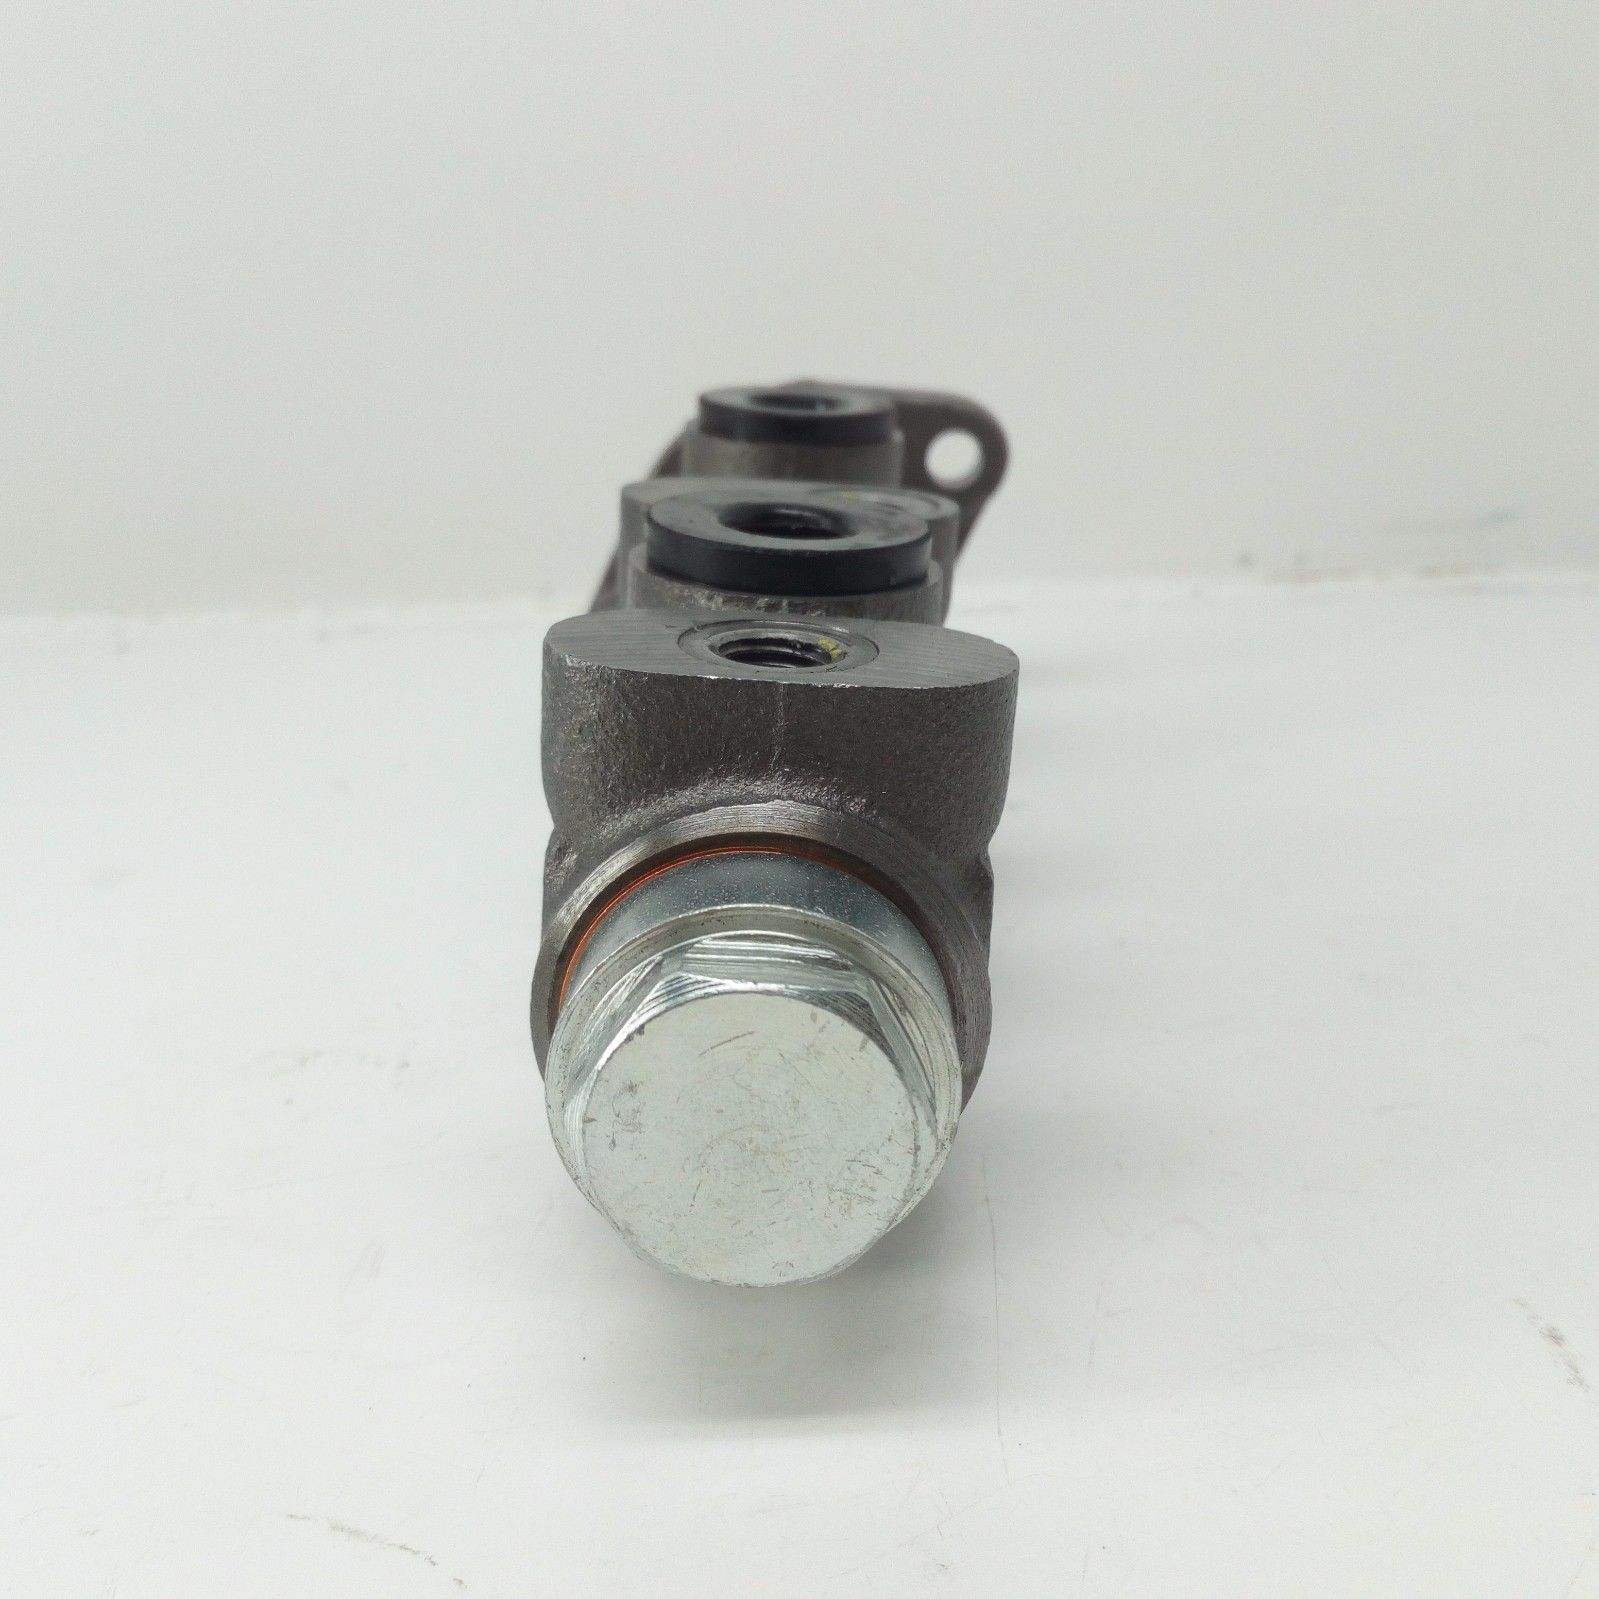 90 ° CITROEN Common Rail Diesel Iniettore Leak OFF connettore per tubature BOSCH